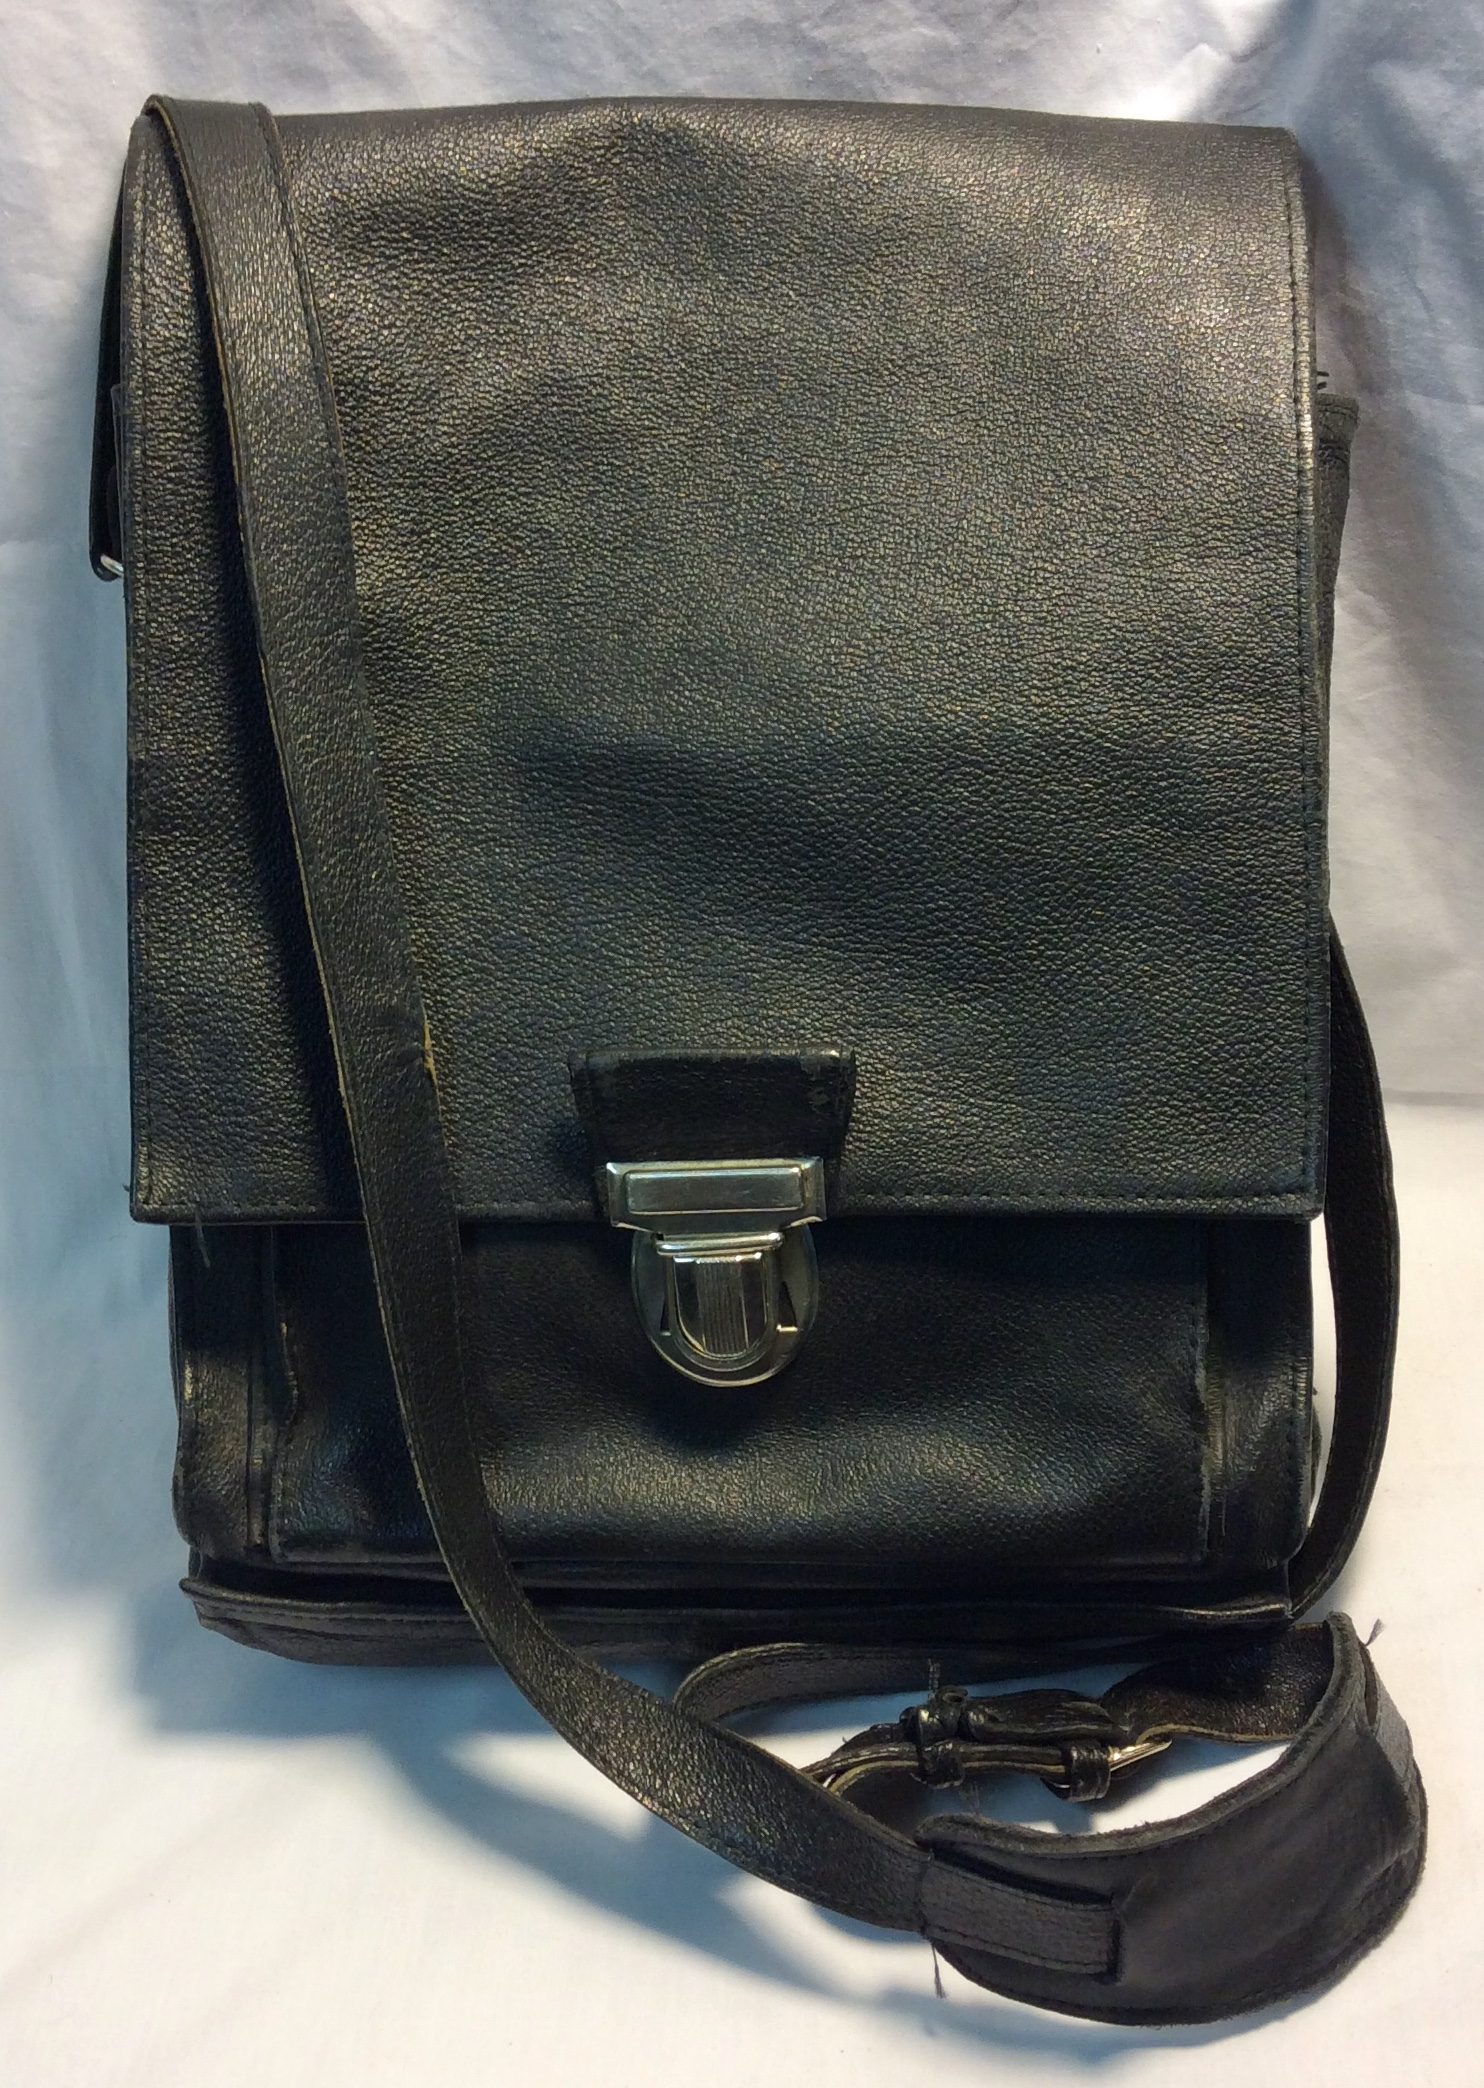 Black leather bag with silver clasp